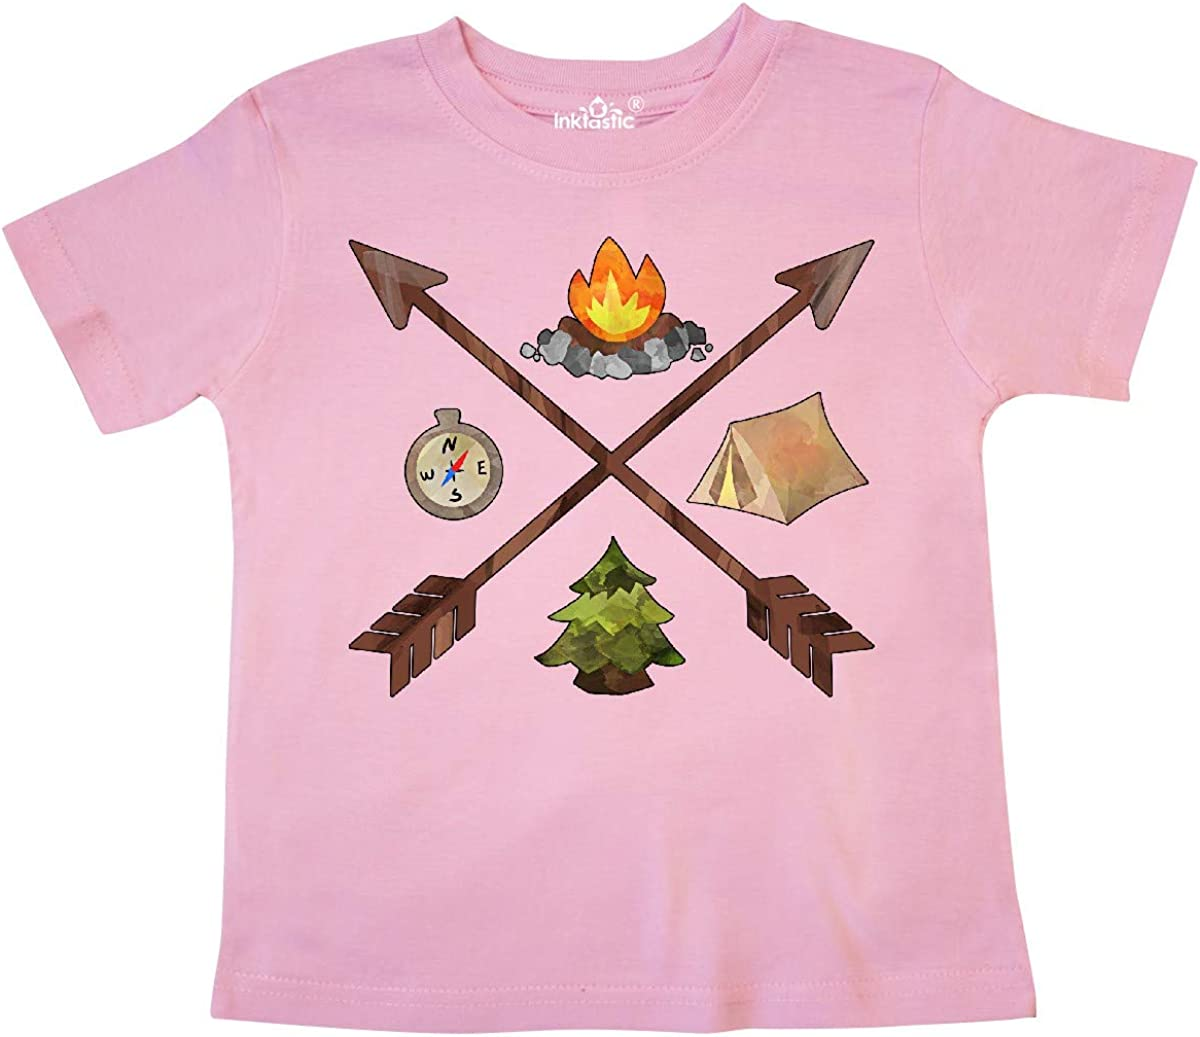 inktastic Camping Icons with Arrows Toddler T-Shirt